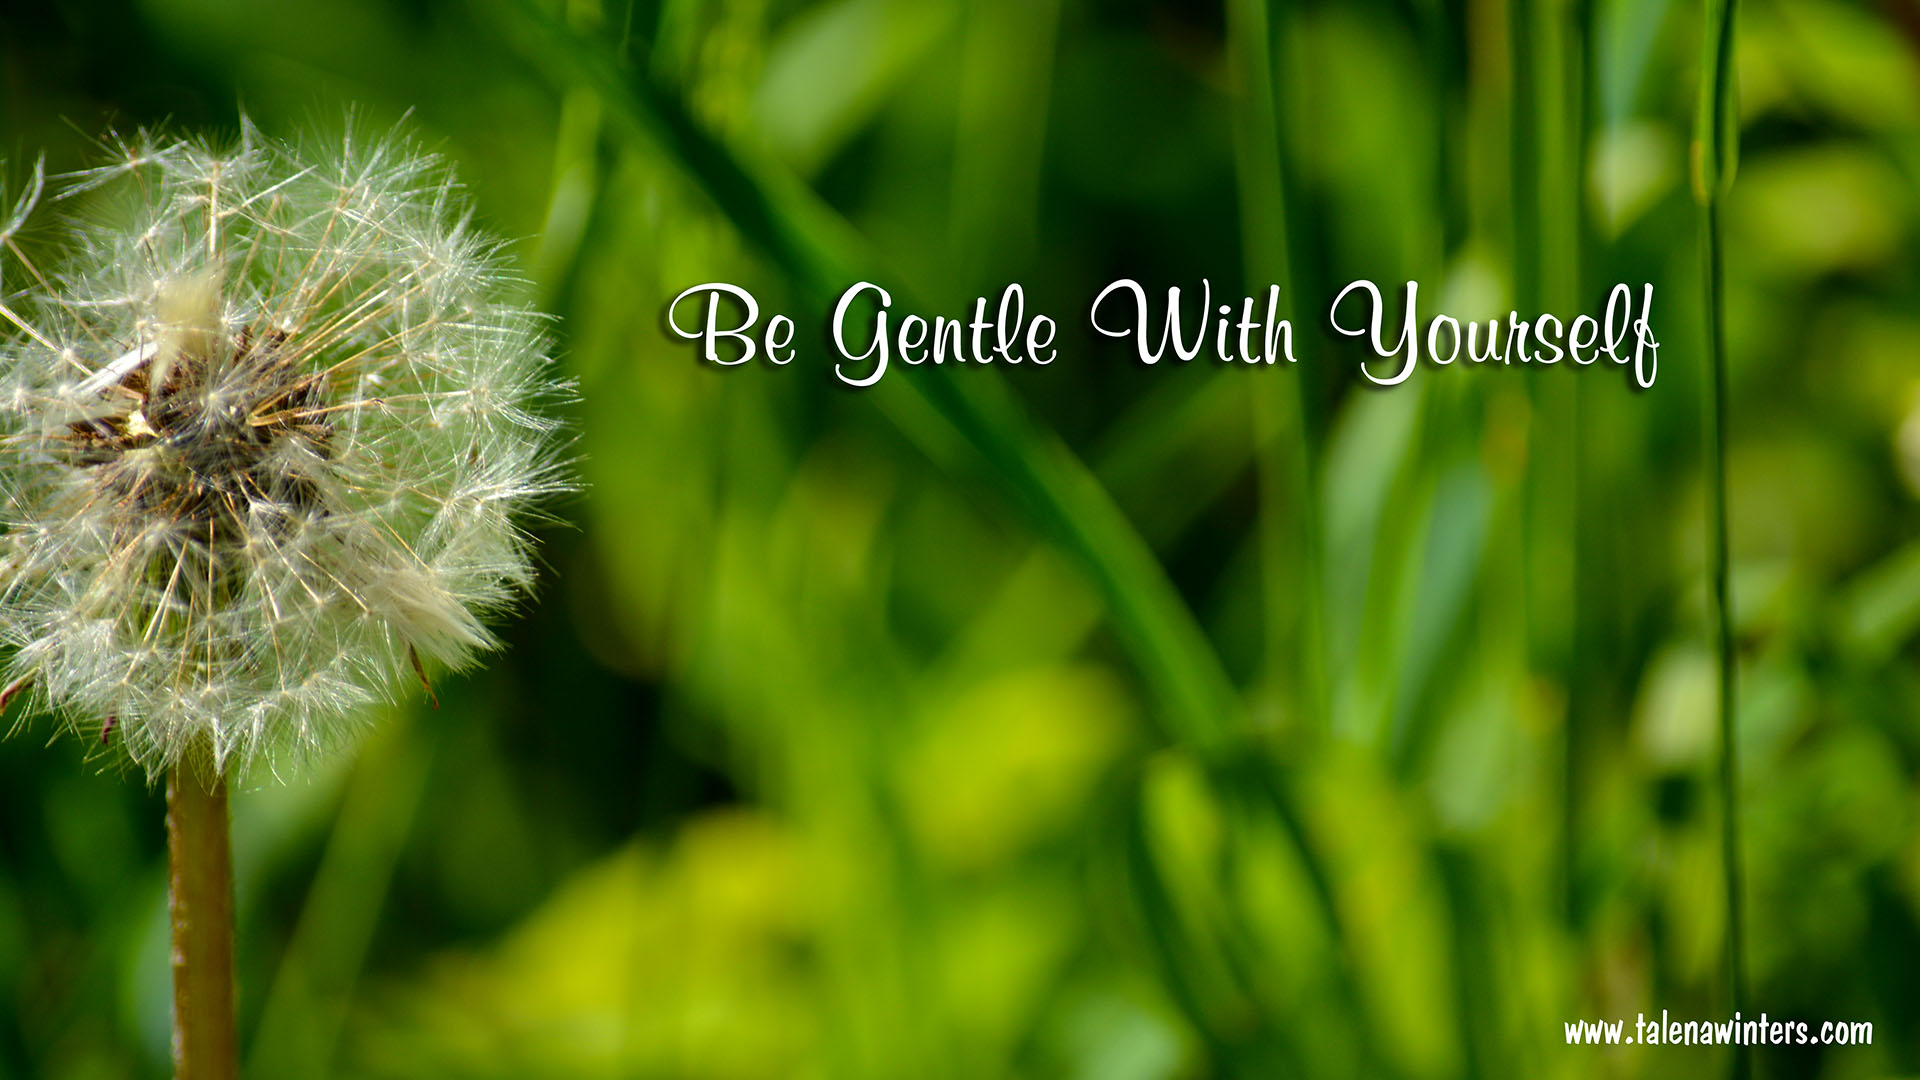 """Be Gentle With Yourself"" Wallpaper, 1920x1080 Resolution"